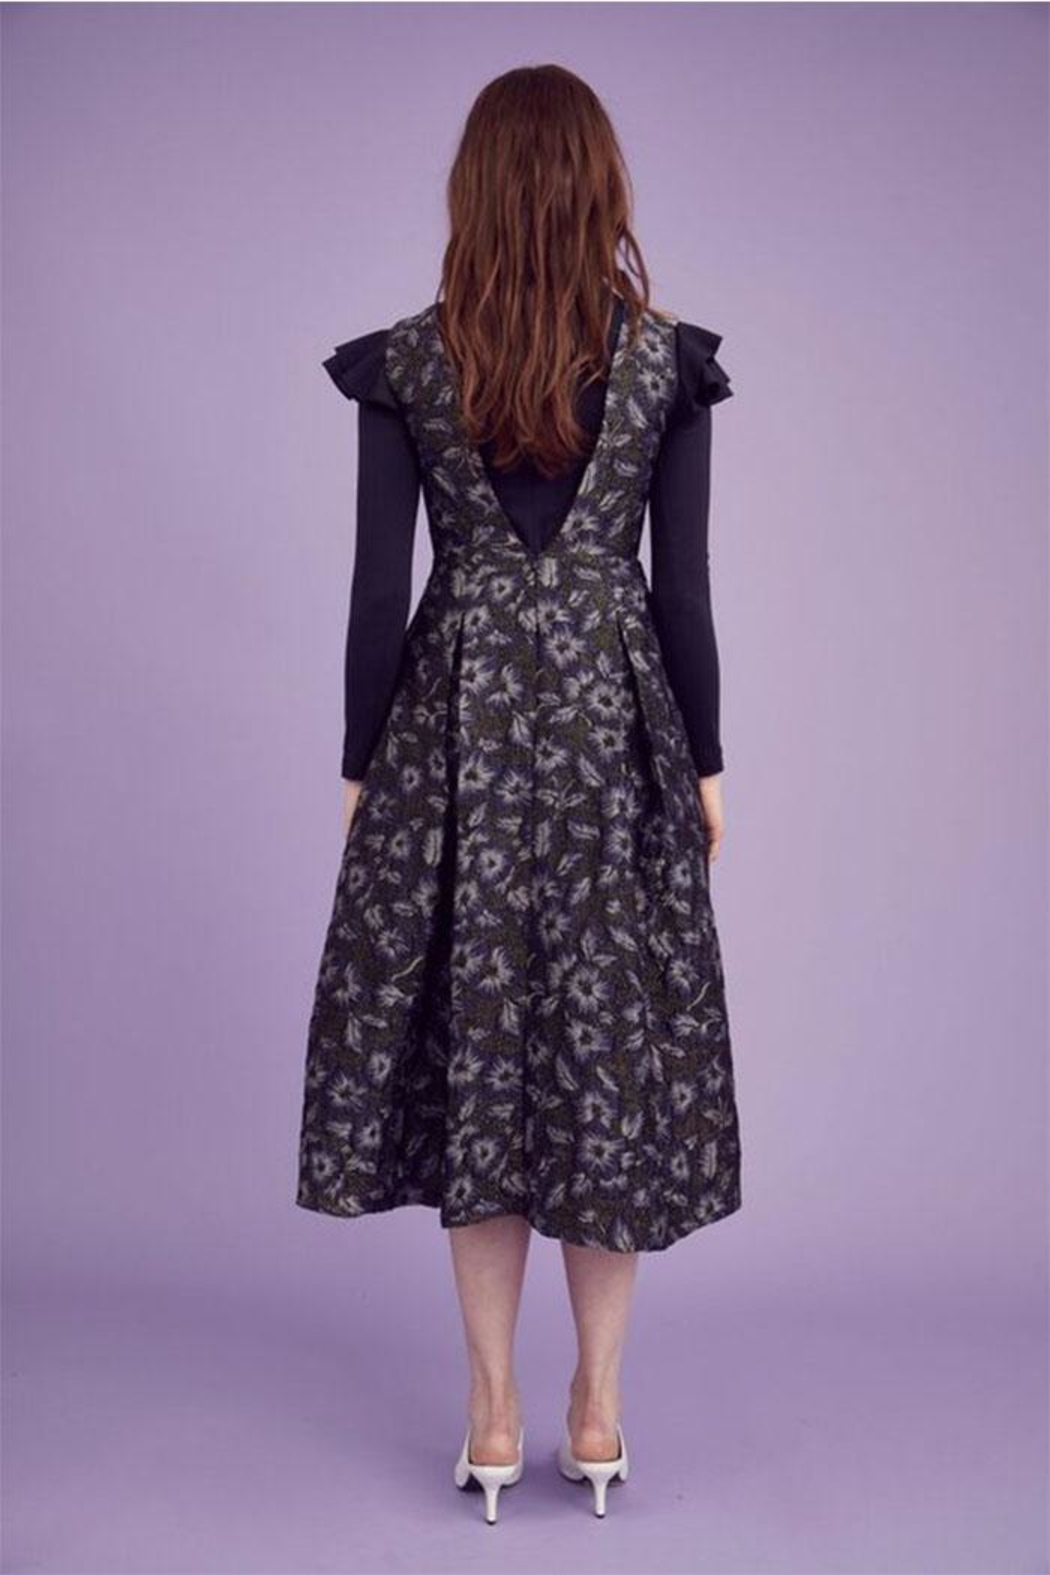 Hunter Bell New York Whitley Floral Dress - Side Cropped Image